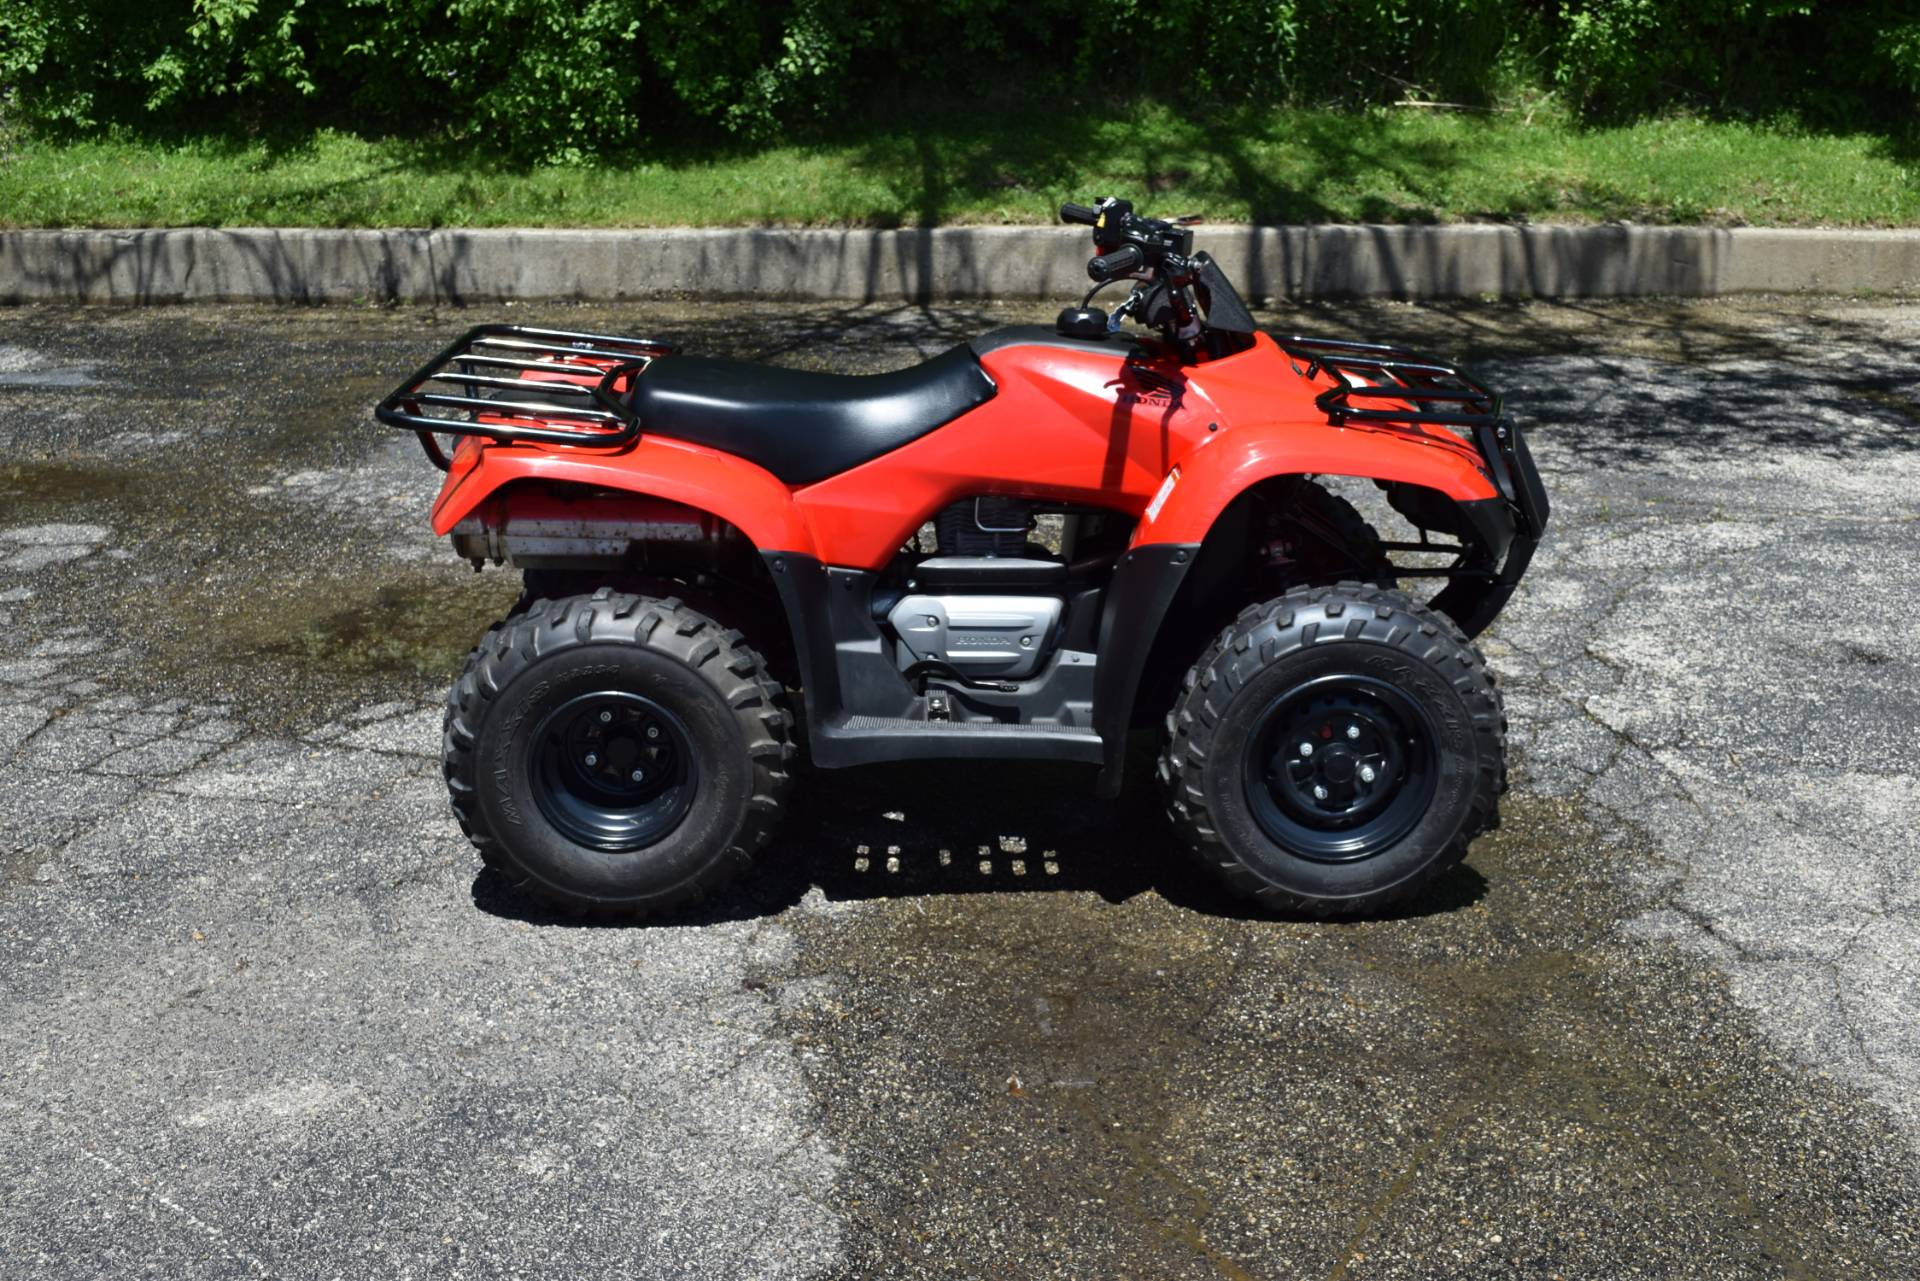 2017 Honda FourTrax Recon ES for sale 132273